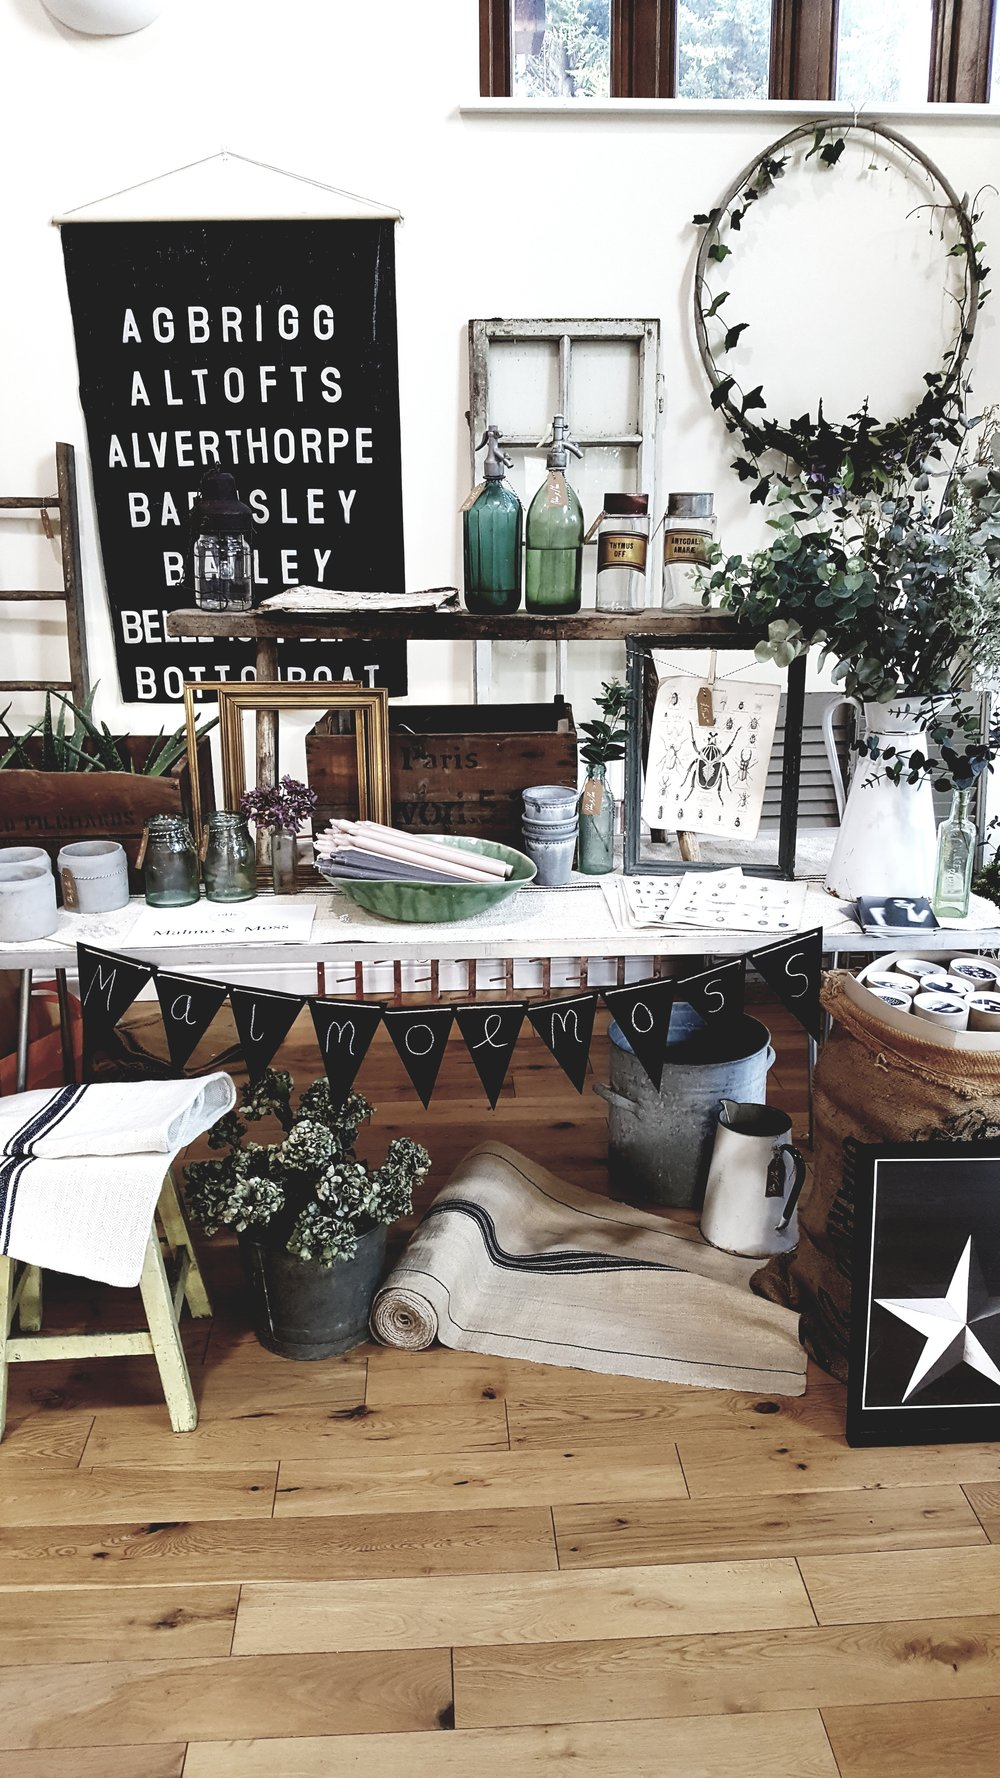 My Malmo & Moss stall featuring vintage finds and some gorgeous prints from talented Scottish design duo @weareamused